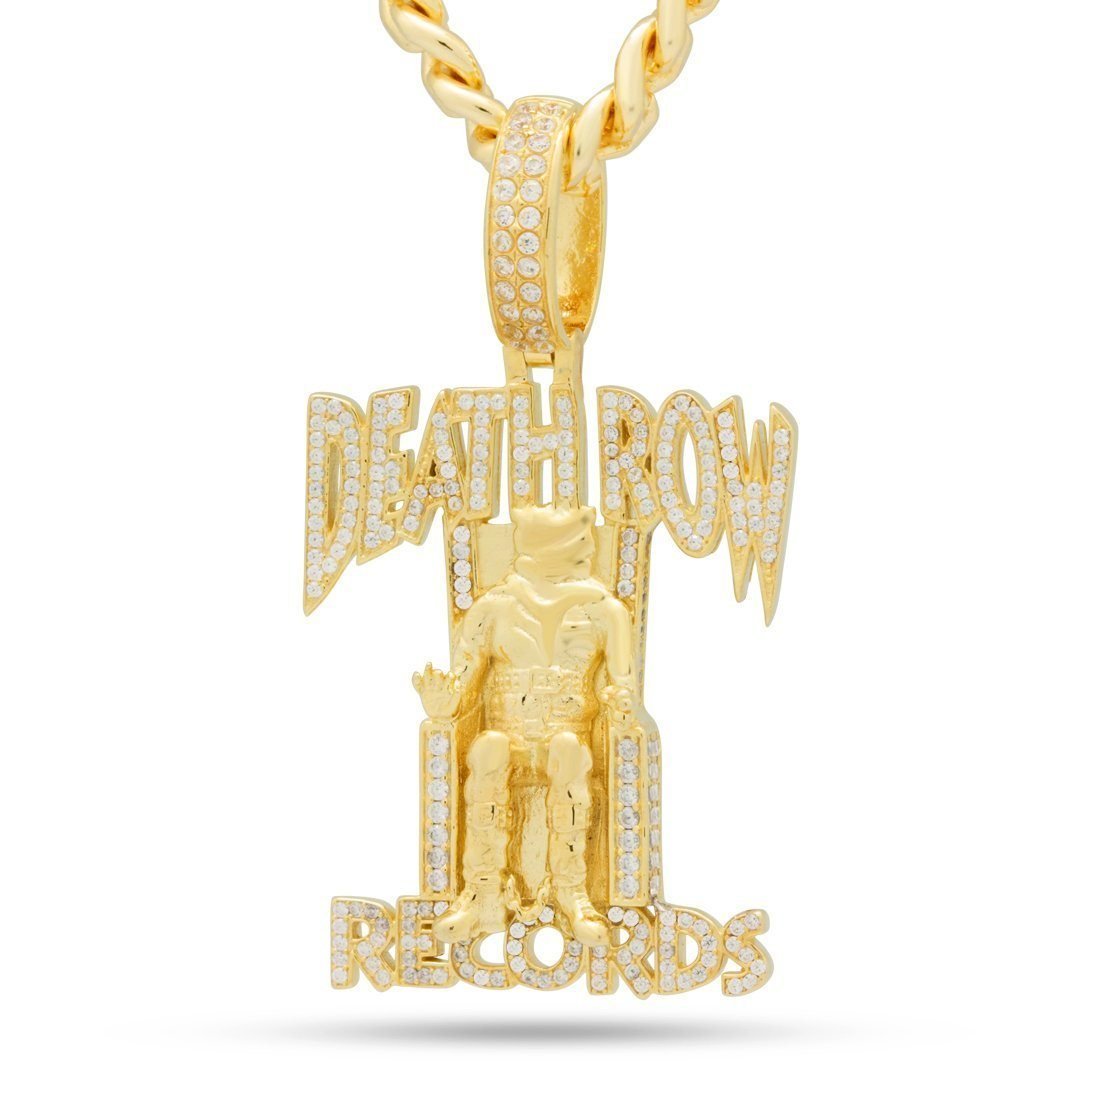 Image of King Ice x Death Row Records .925 Sterling Silver Iced Necklace